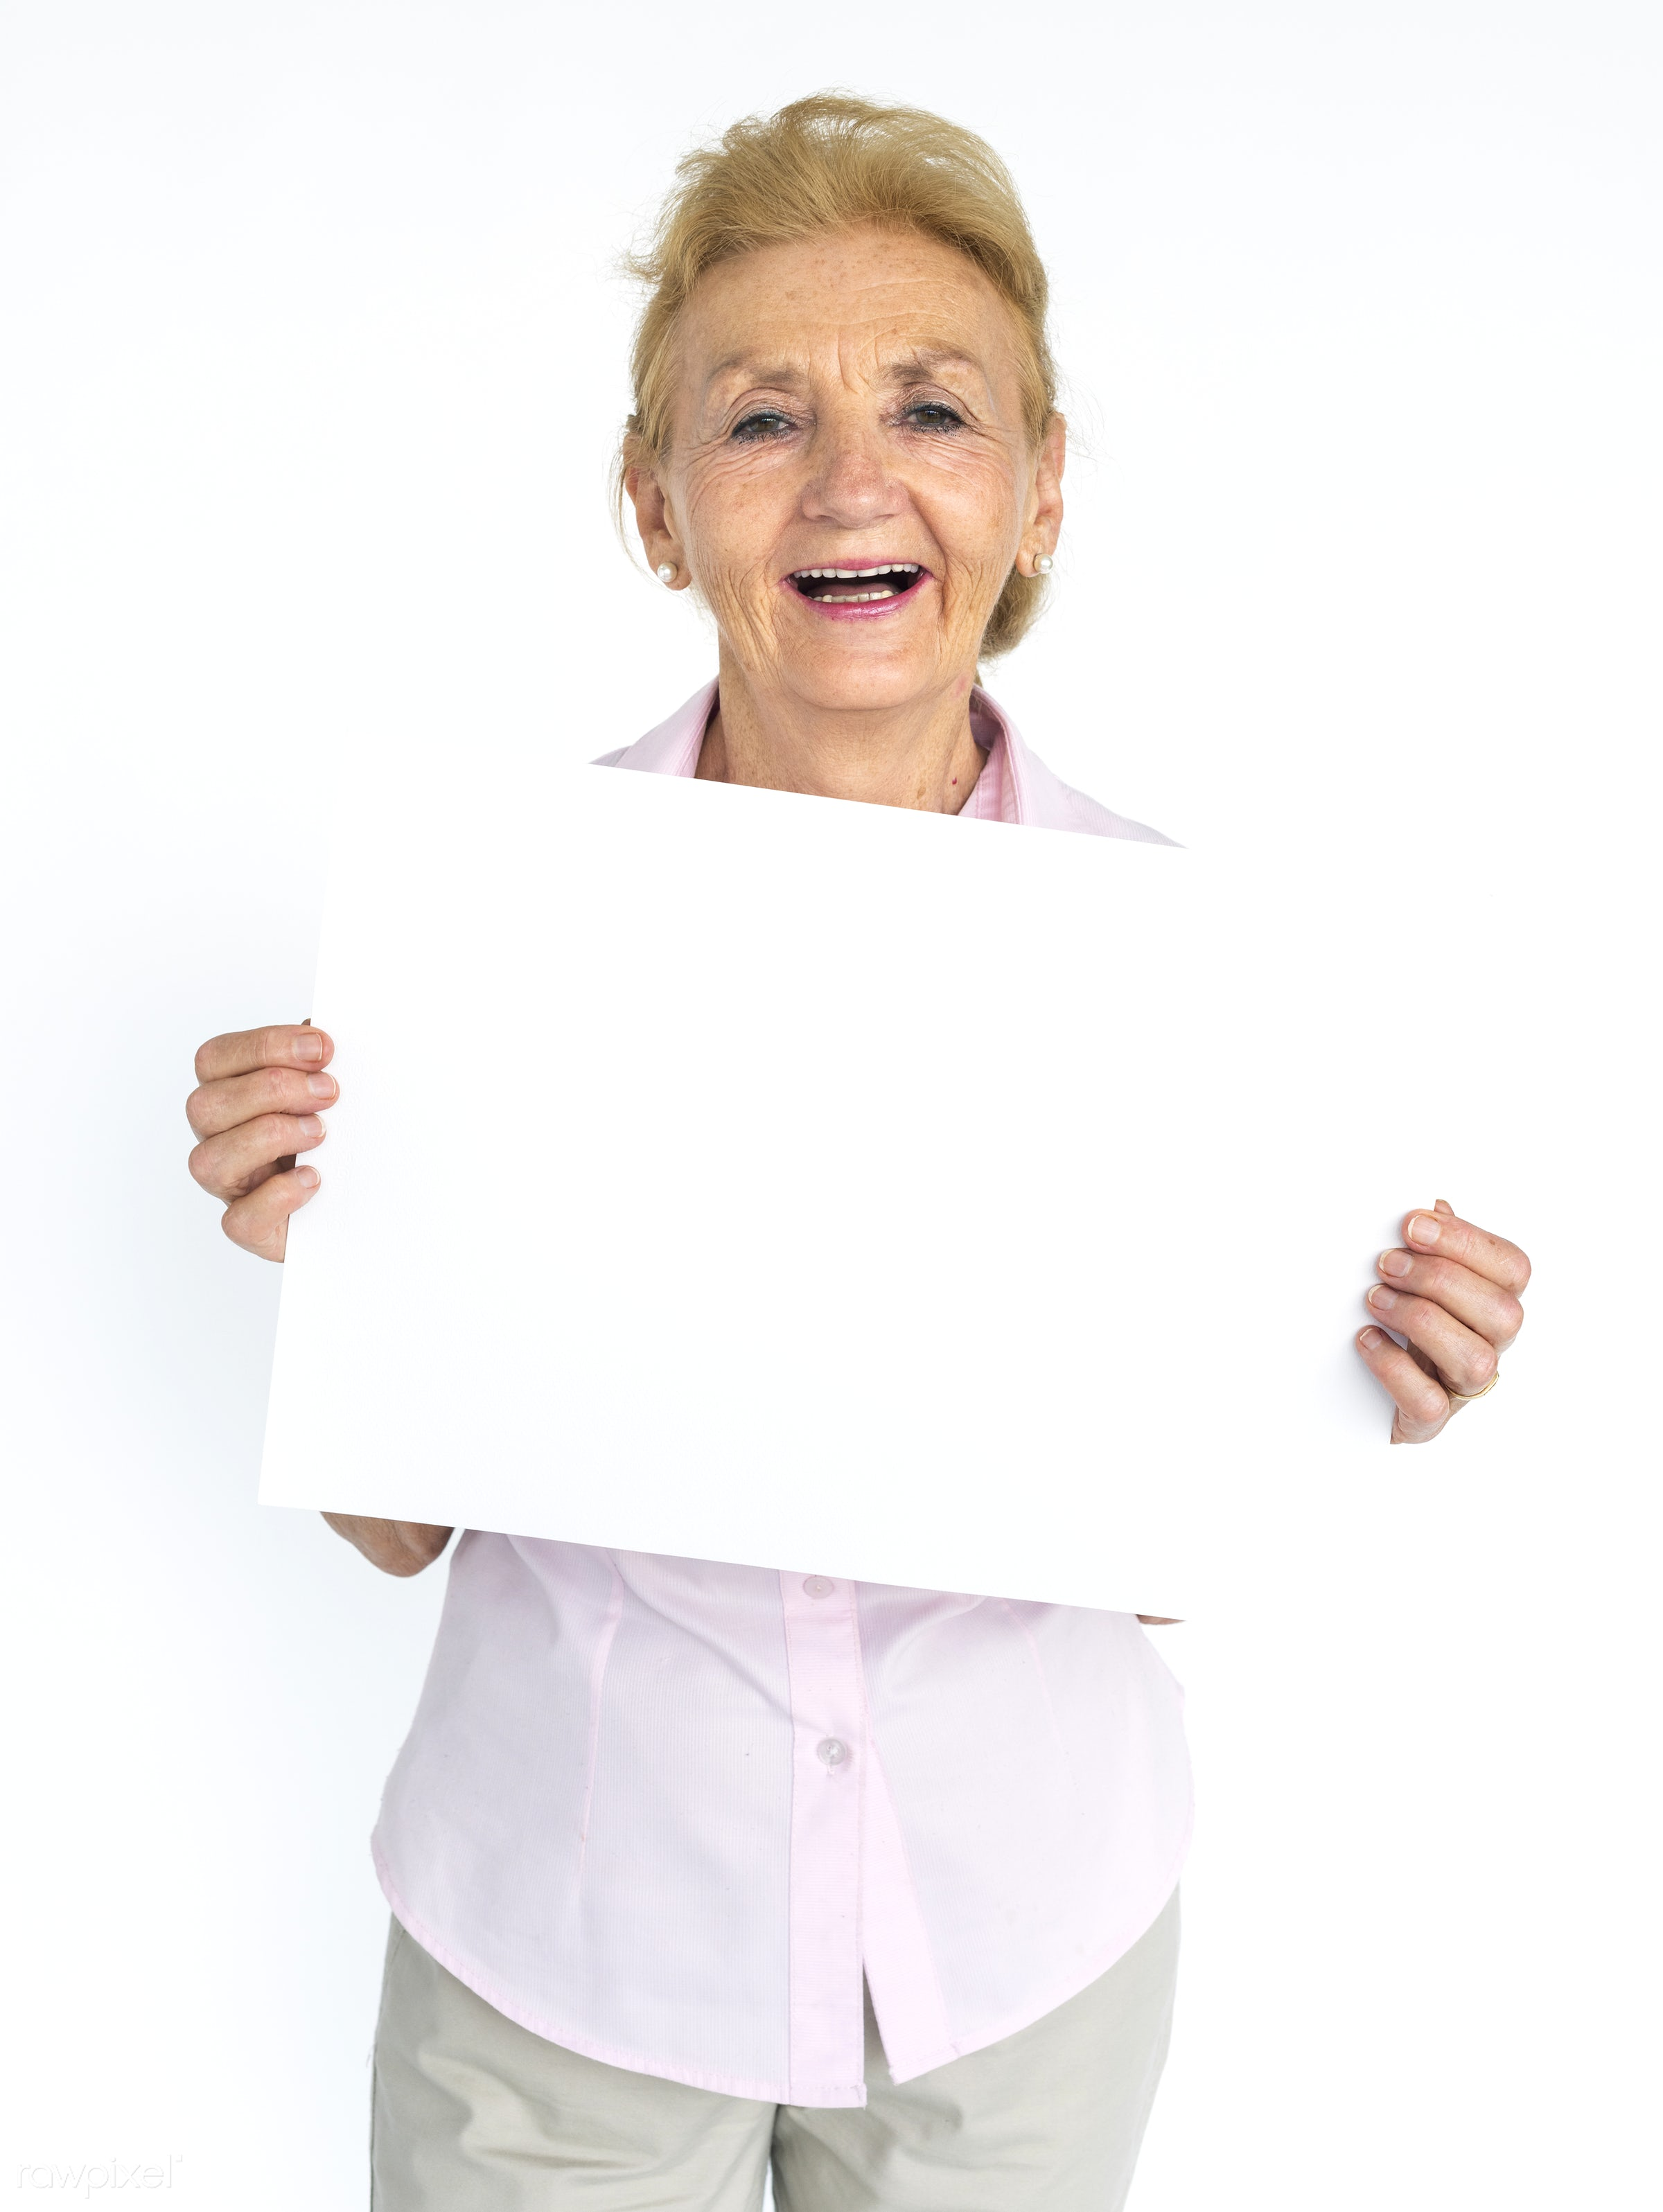 studio, expression, person, holding, people, placard, woman, smile, cheerful, smiling, isolated, white, happiness, portrait...